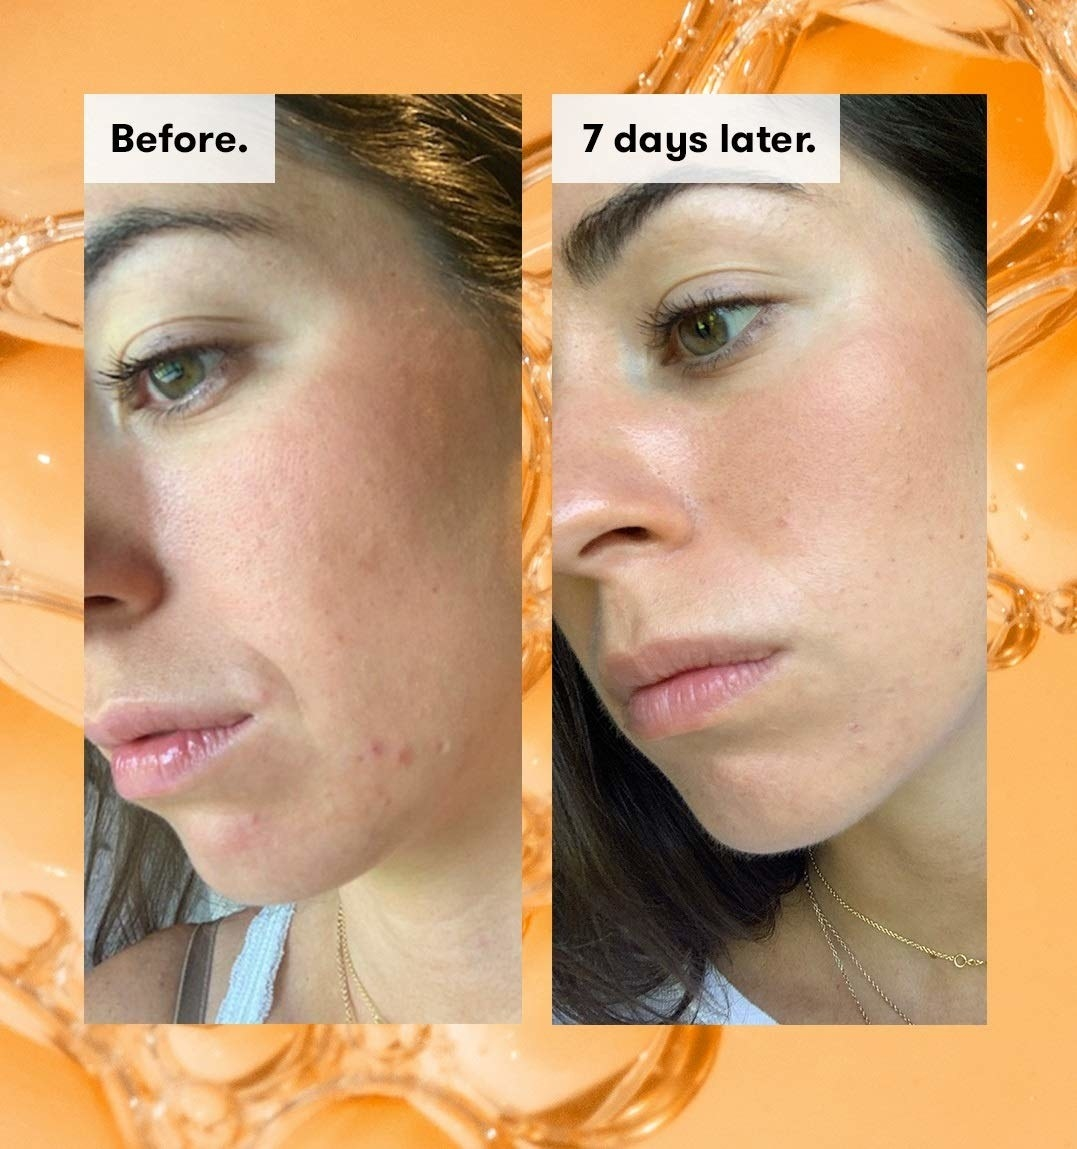 before and after photo of model with visible texture on the left and visibly less texture on the right